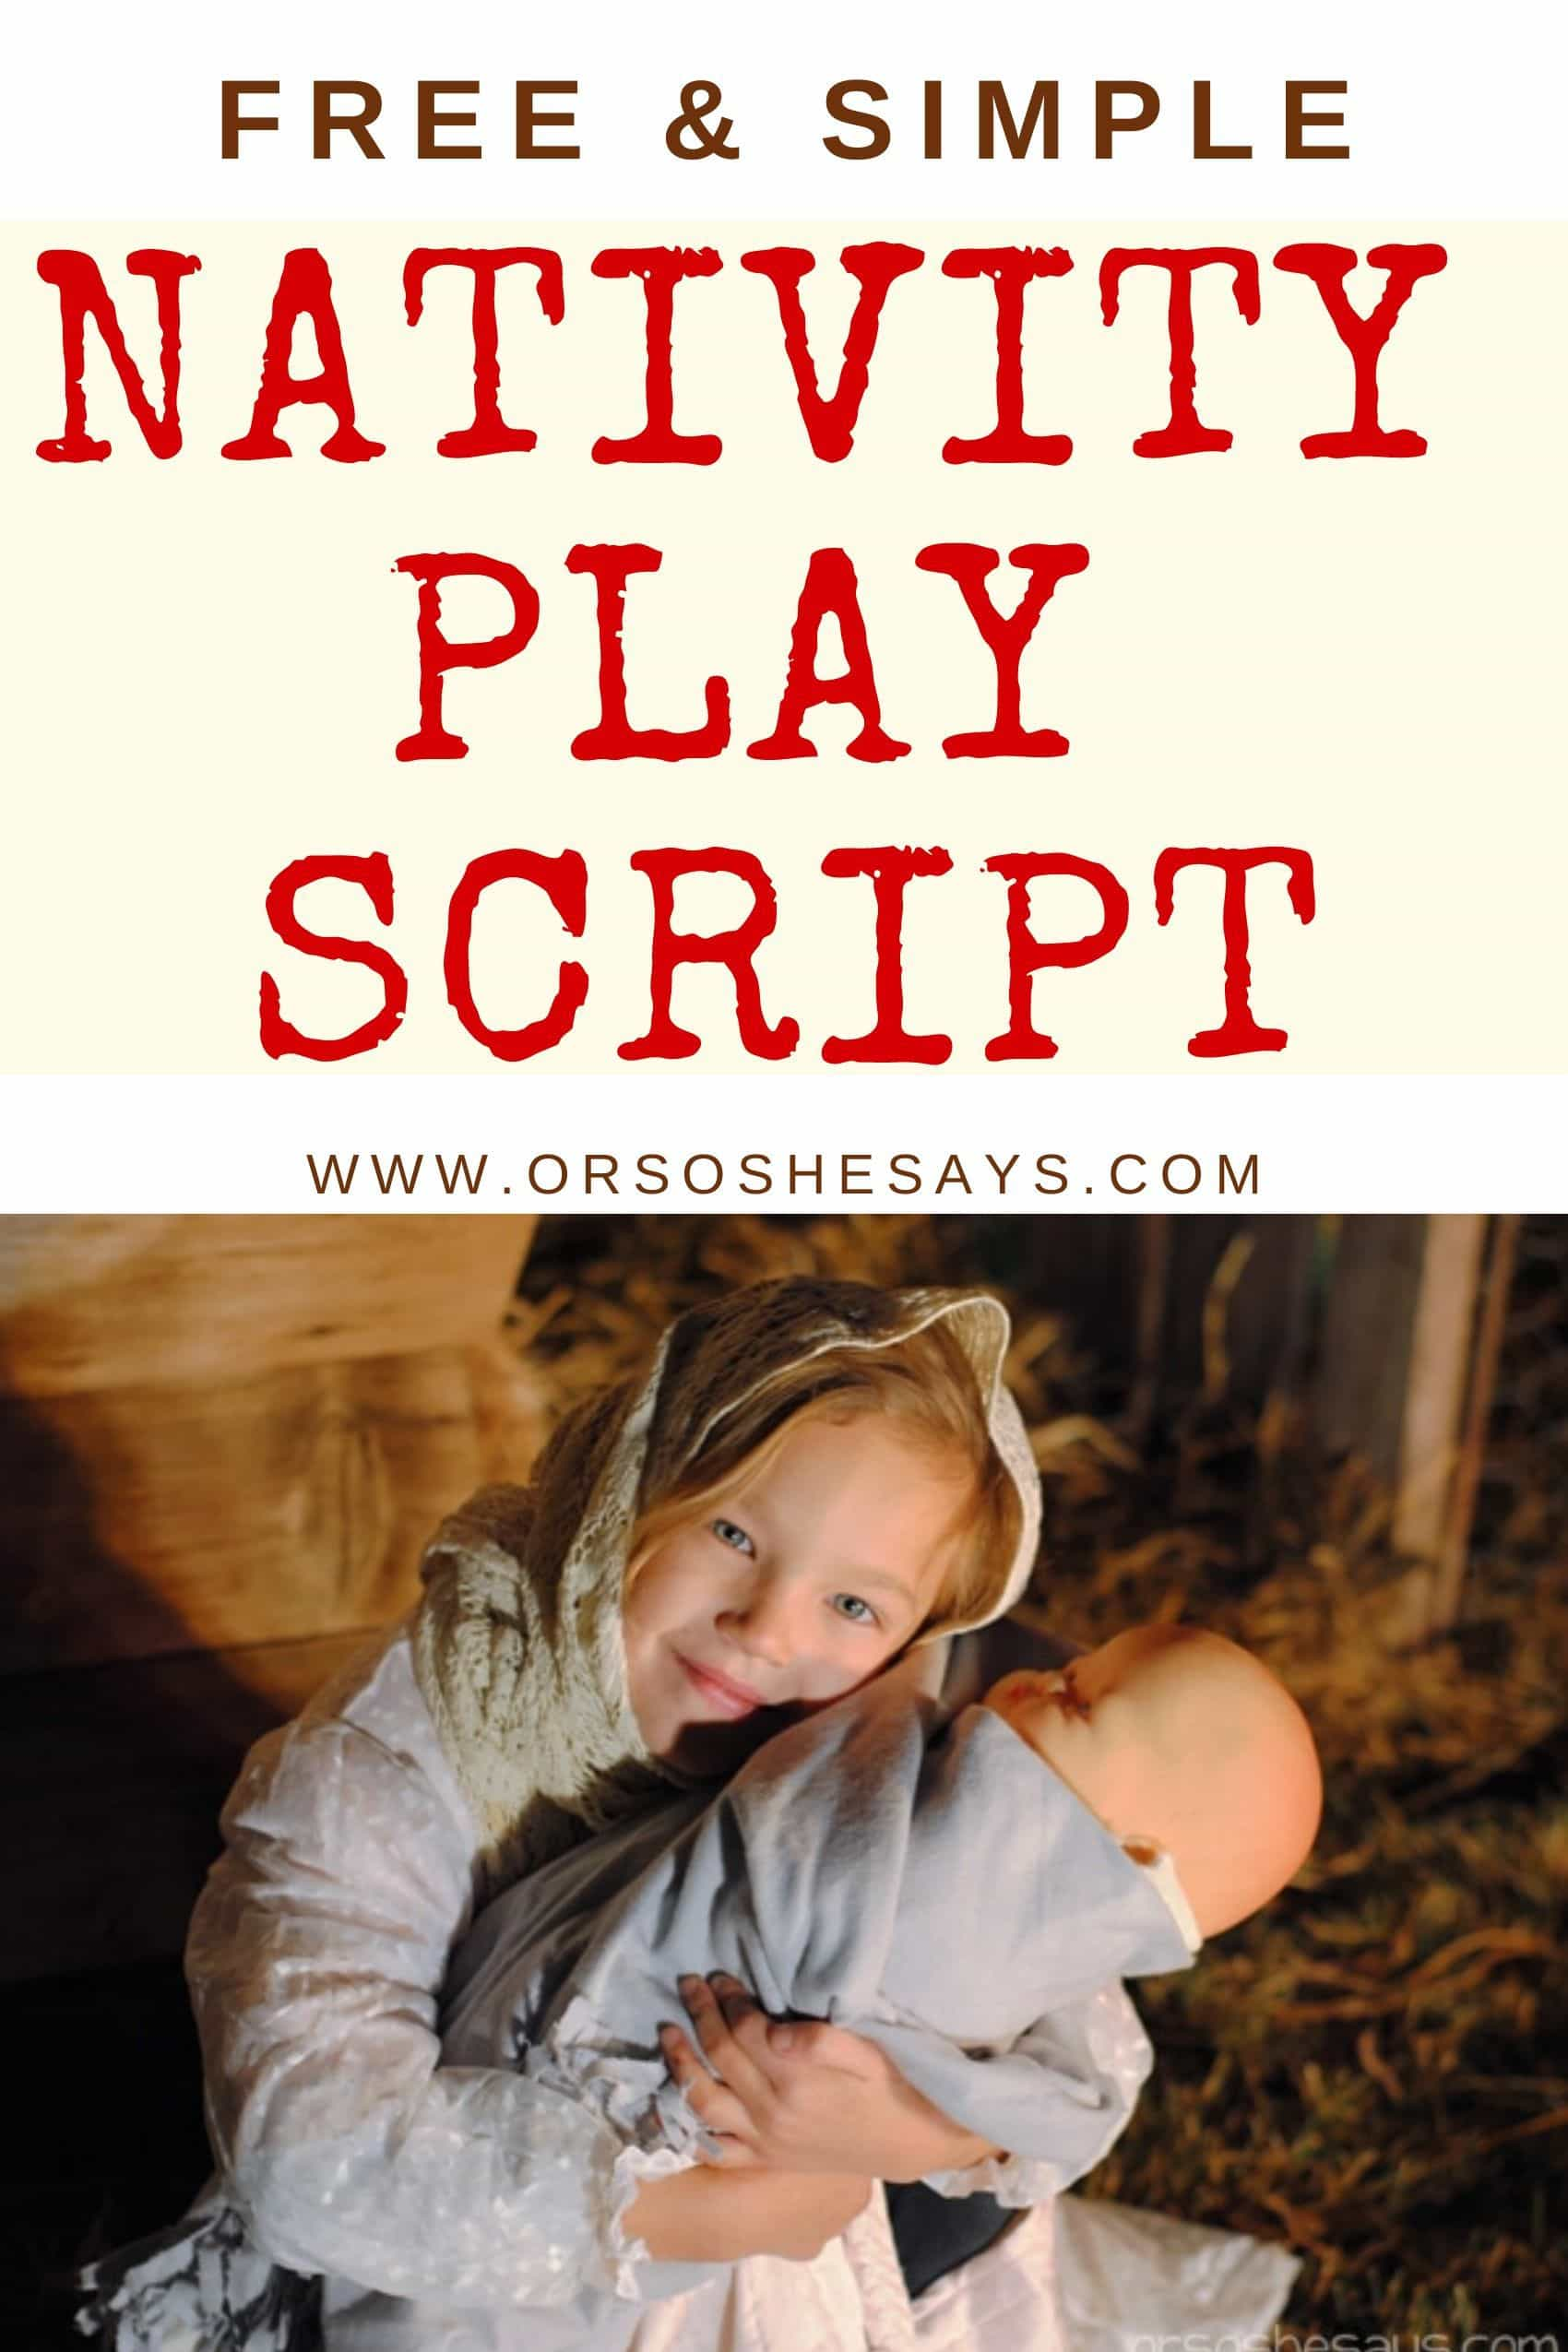 Nativity Play Script